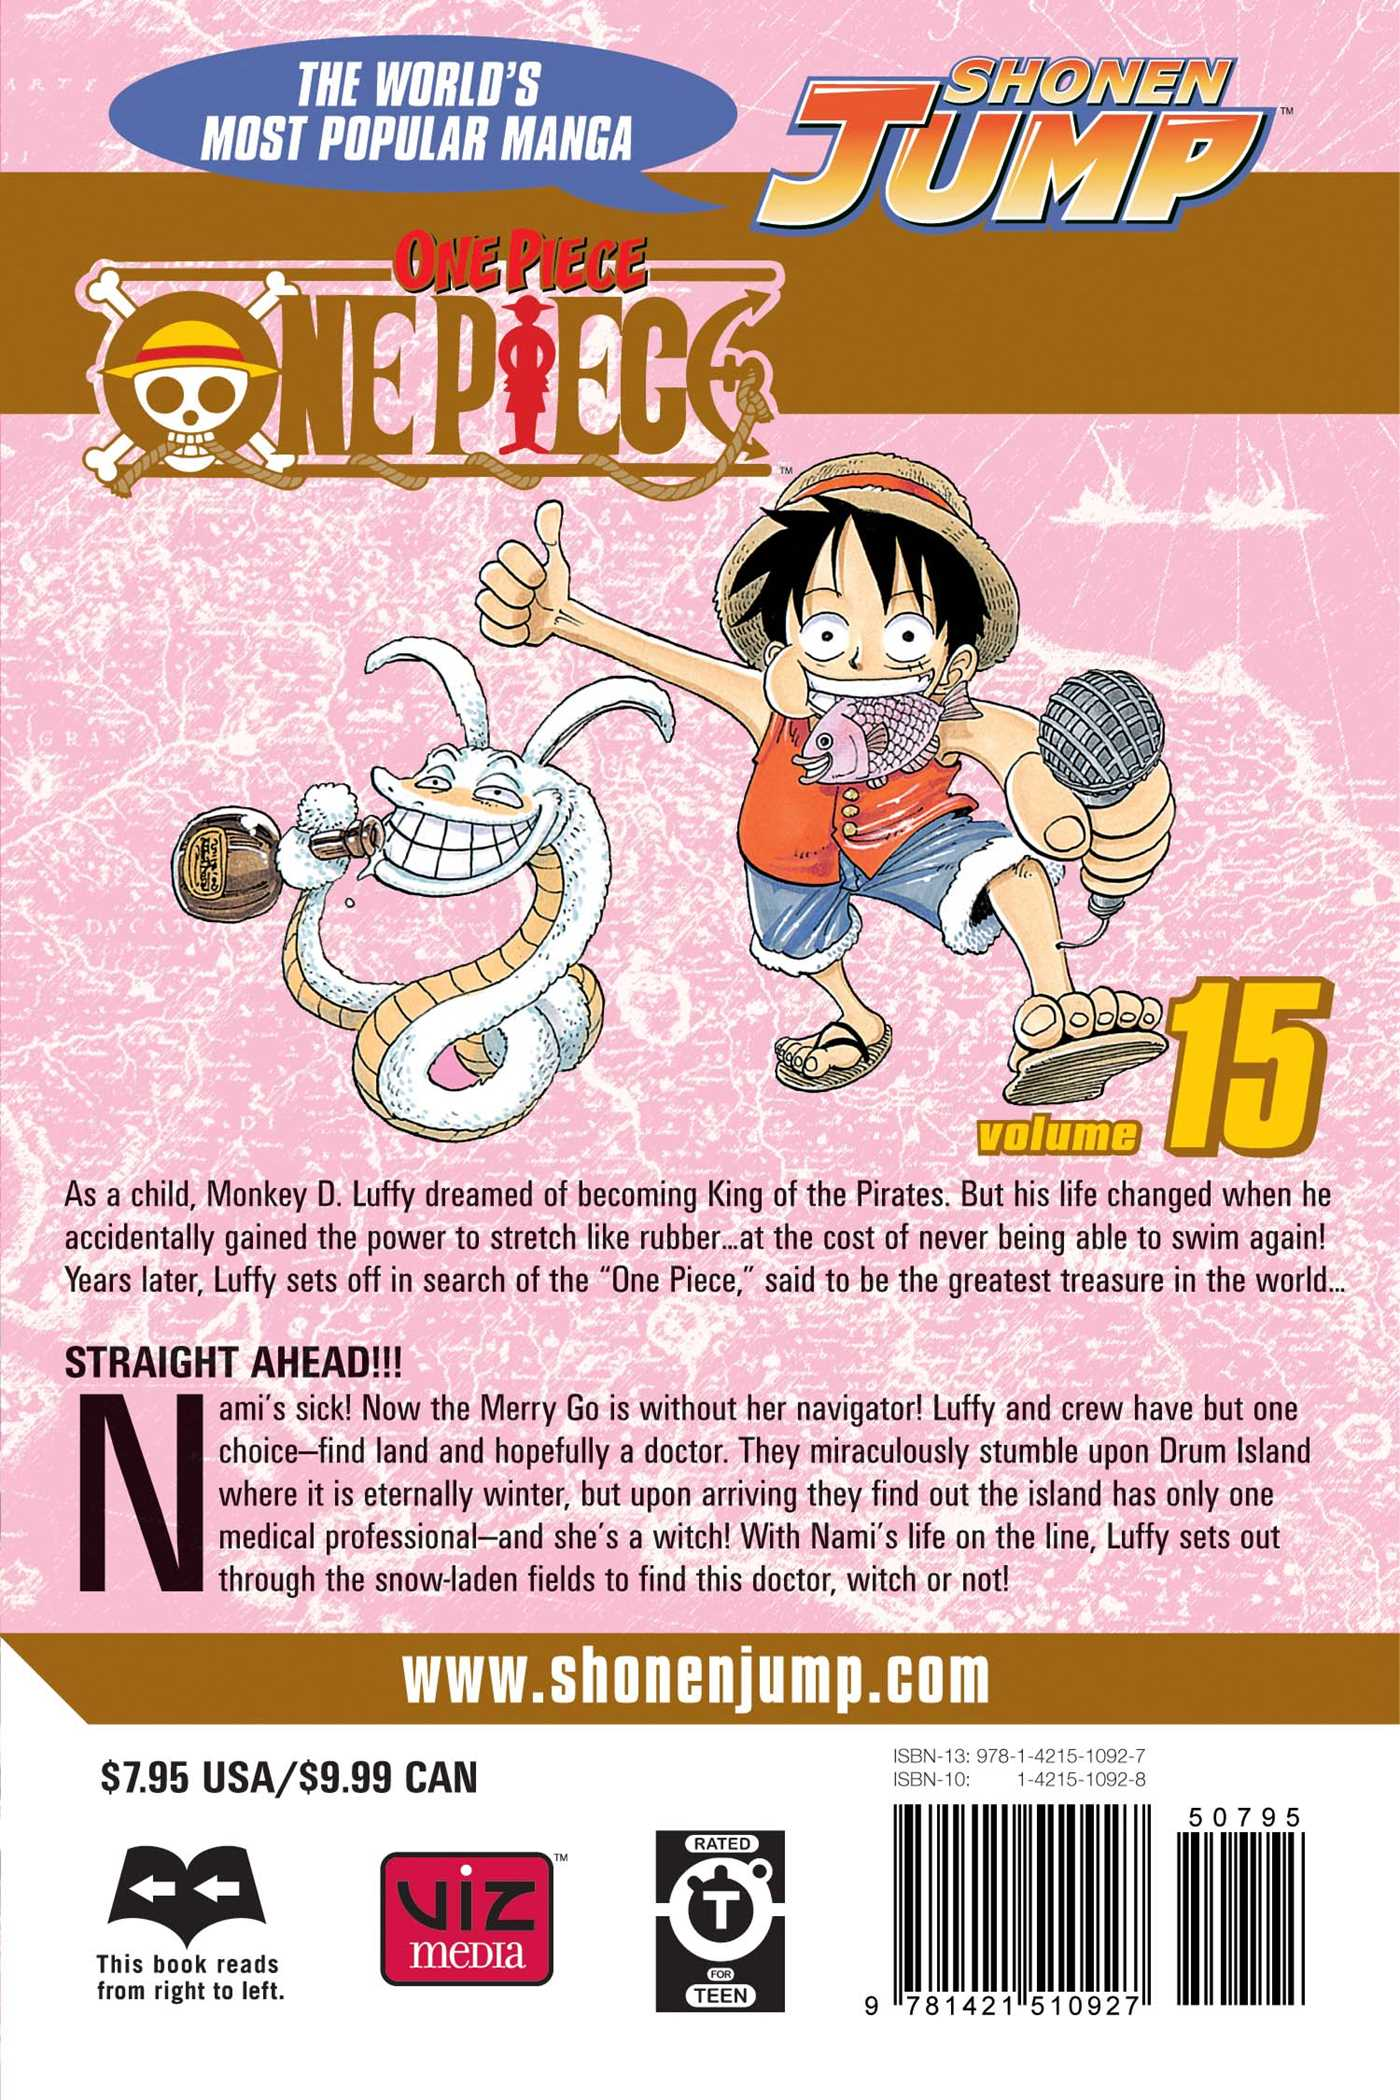 One-piece-vol-15-9781421510927_hr-back